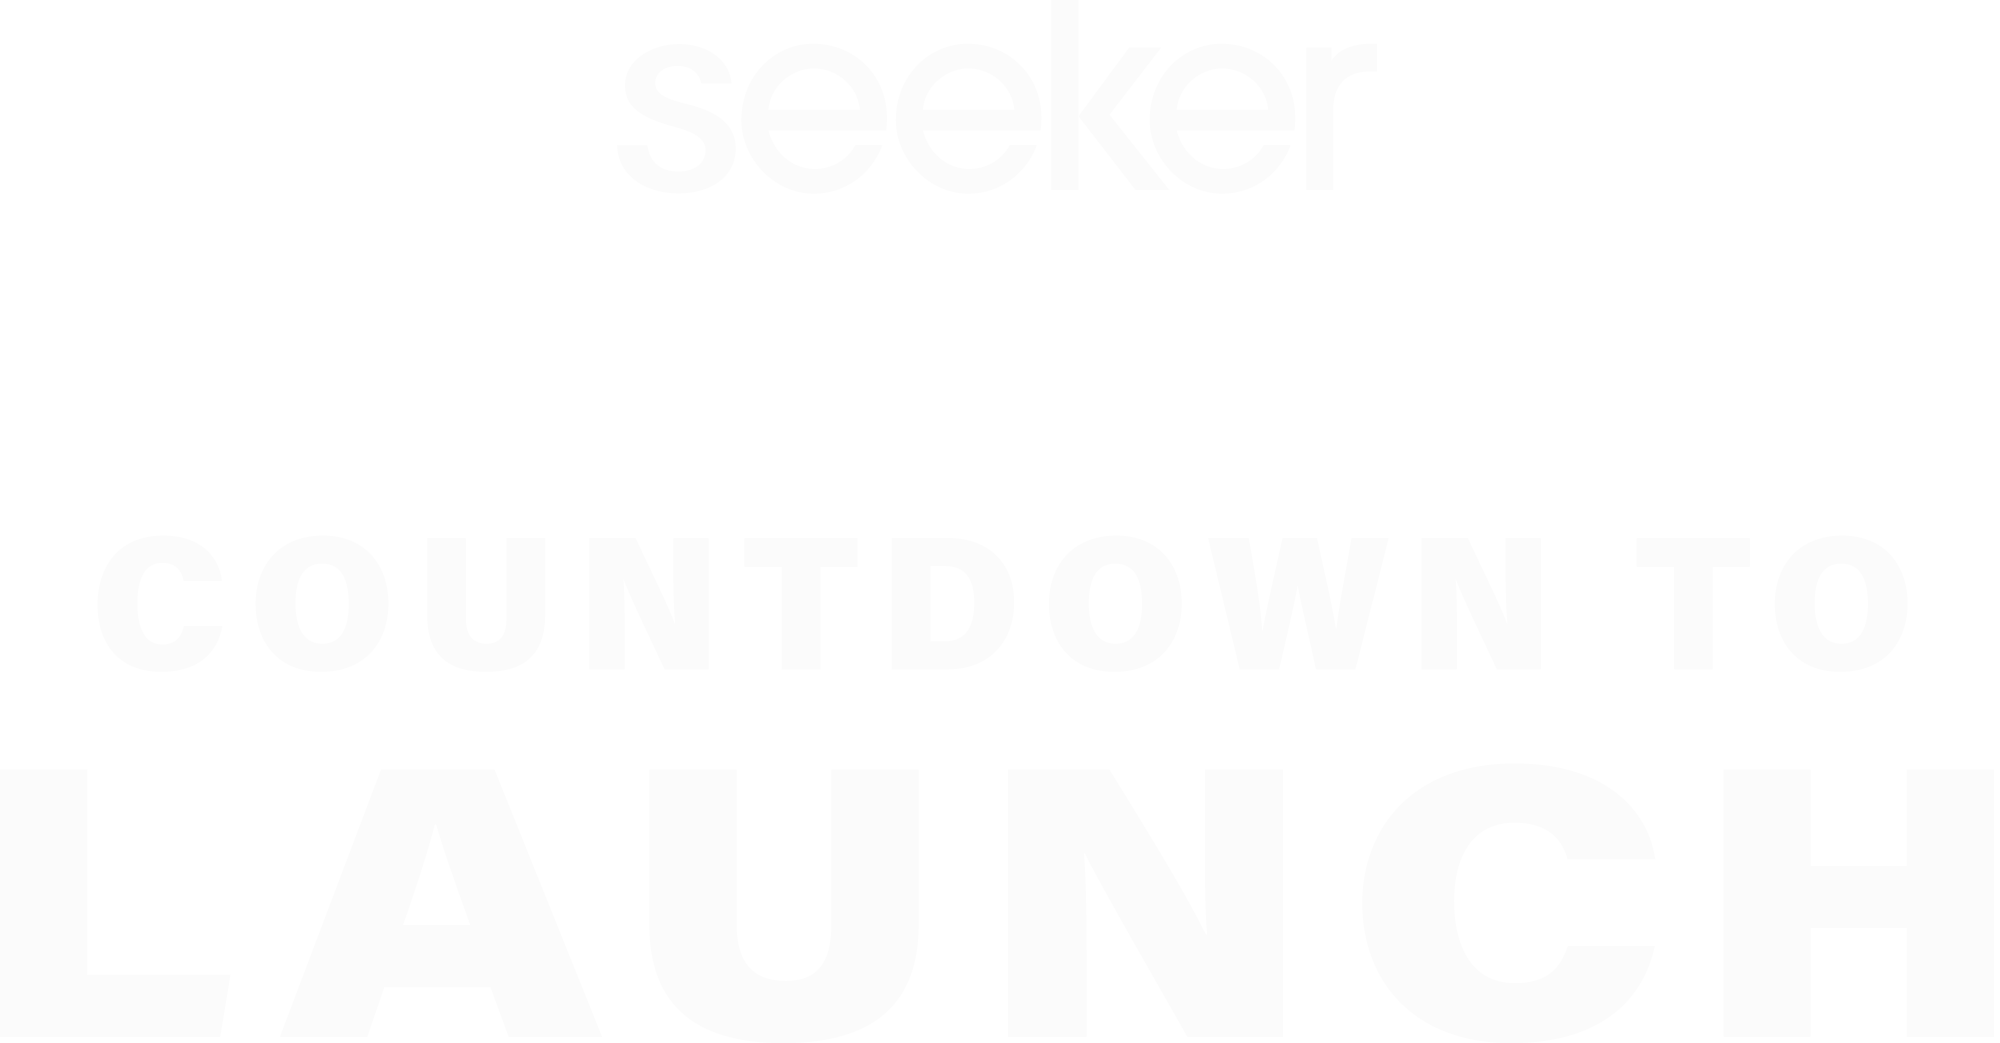 Seeker Countdown to Launch series intro